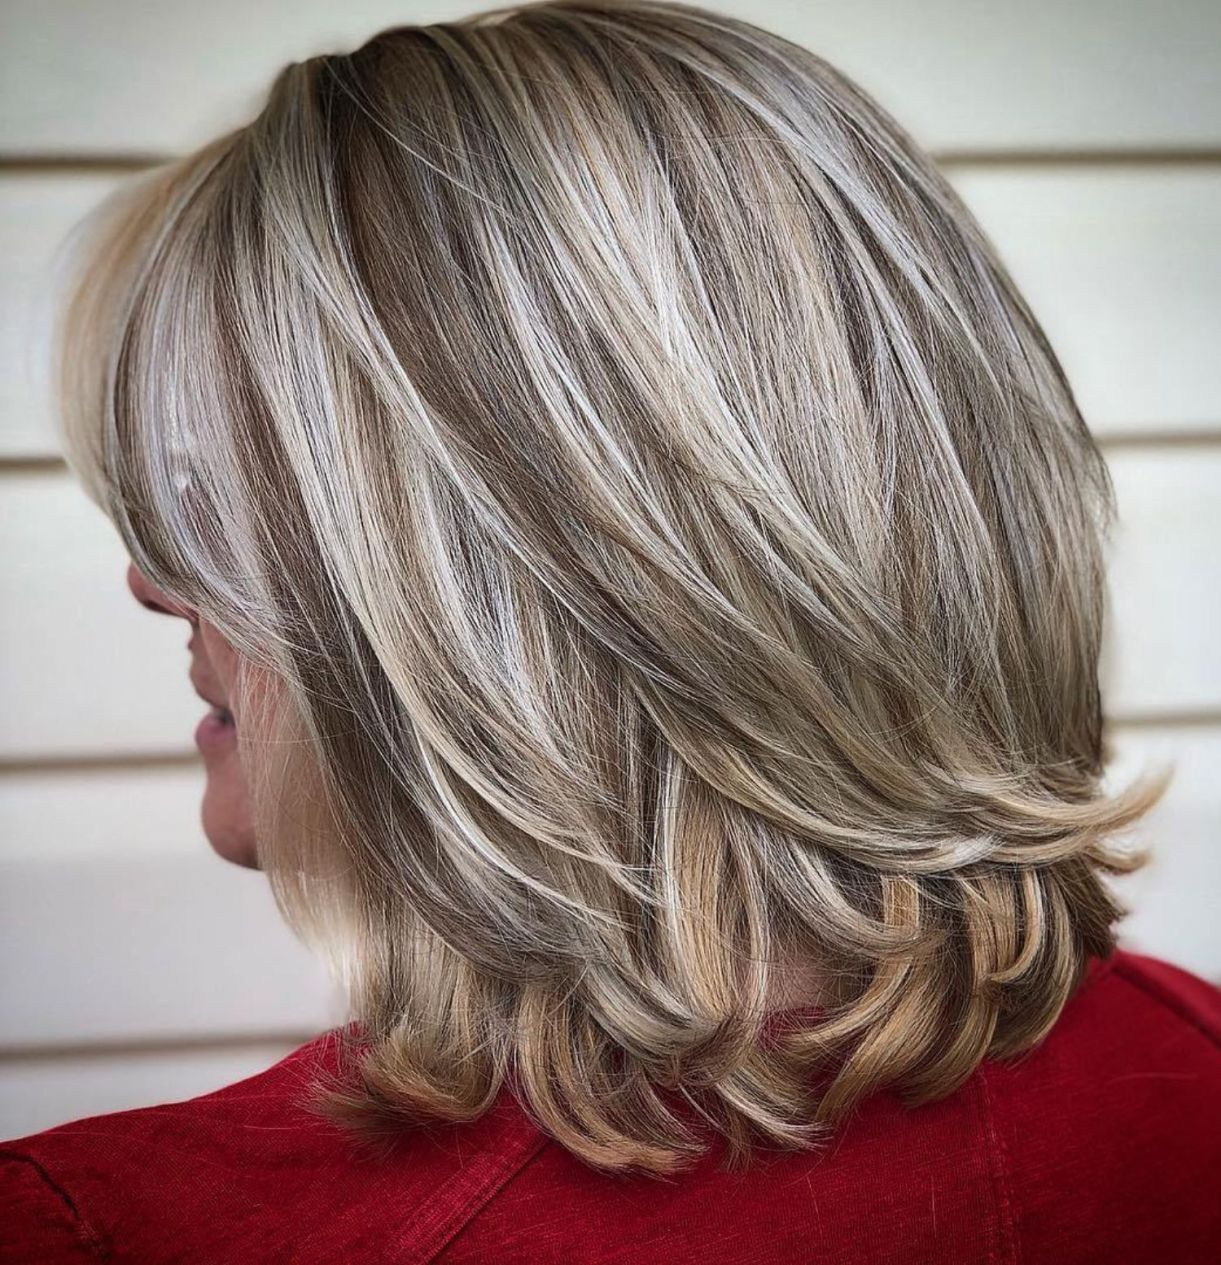 80 Best Modern Hairstyles And Haircuts For Women Over 50 In 2019